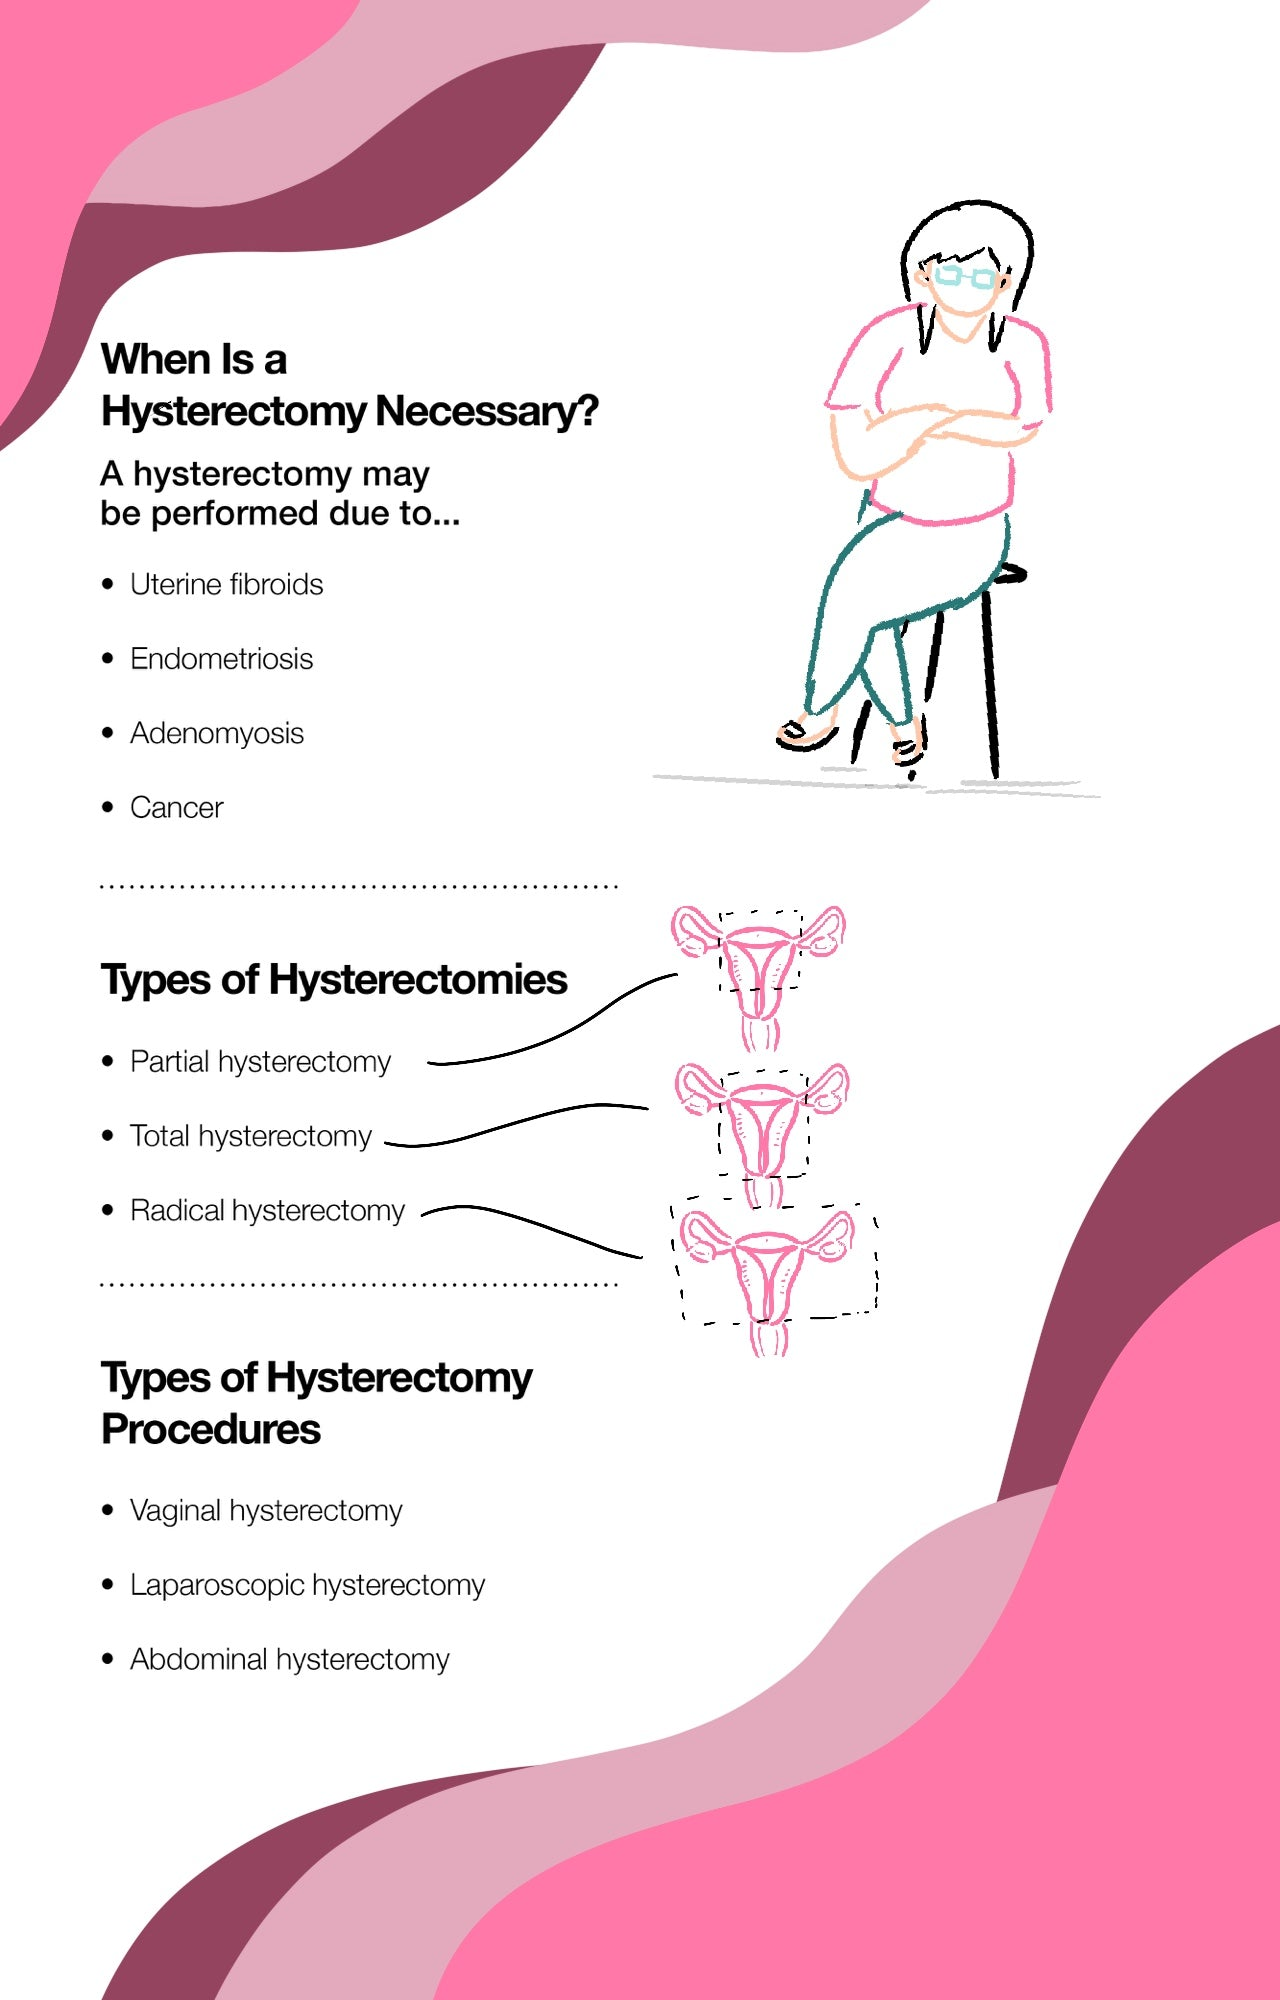 When Is a Hysterectomy Necessary?